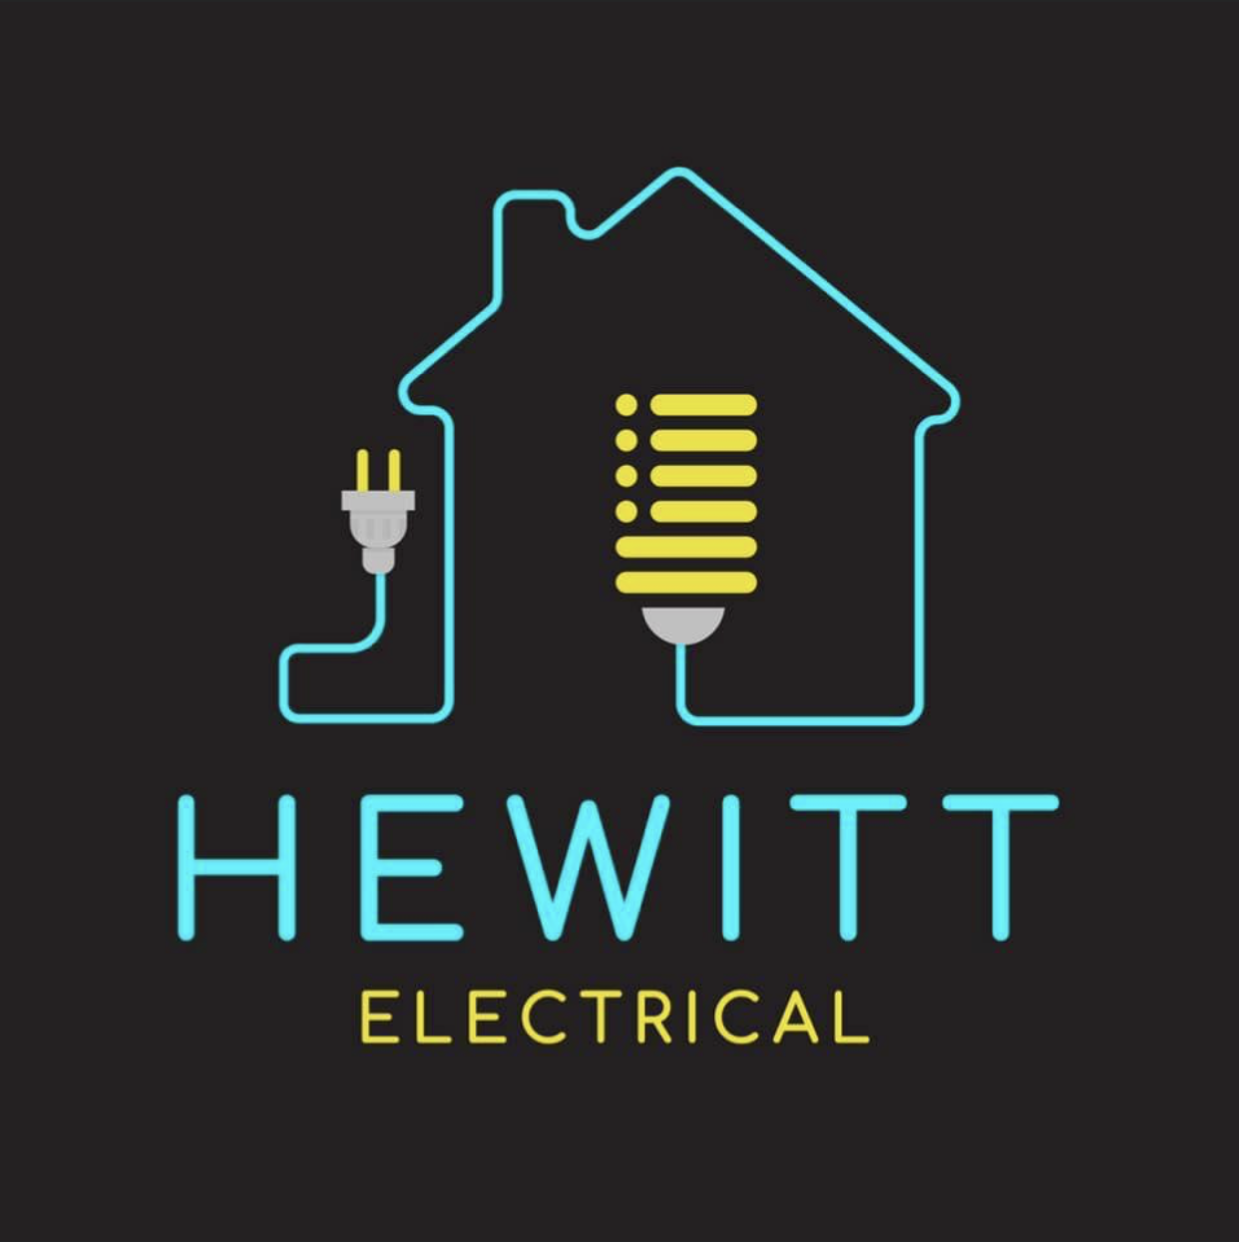 Hewitt Electrical